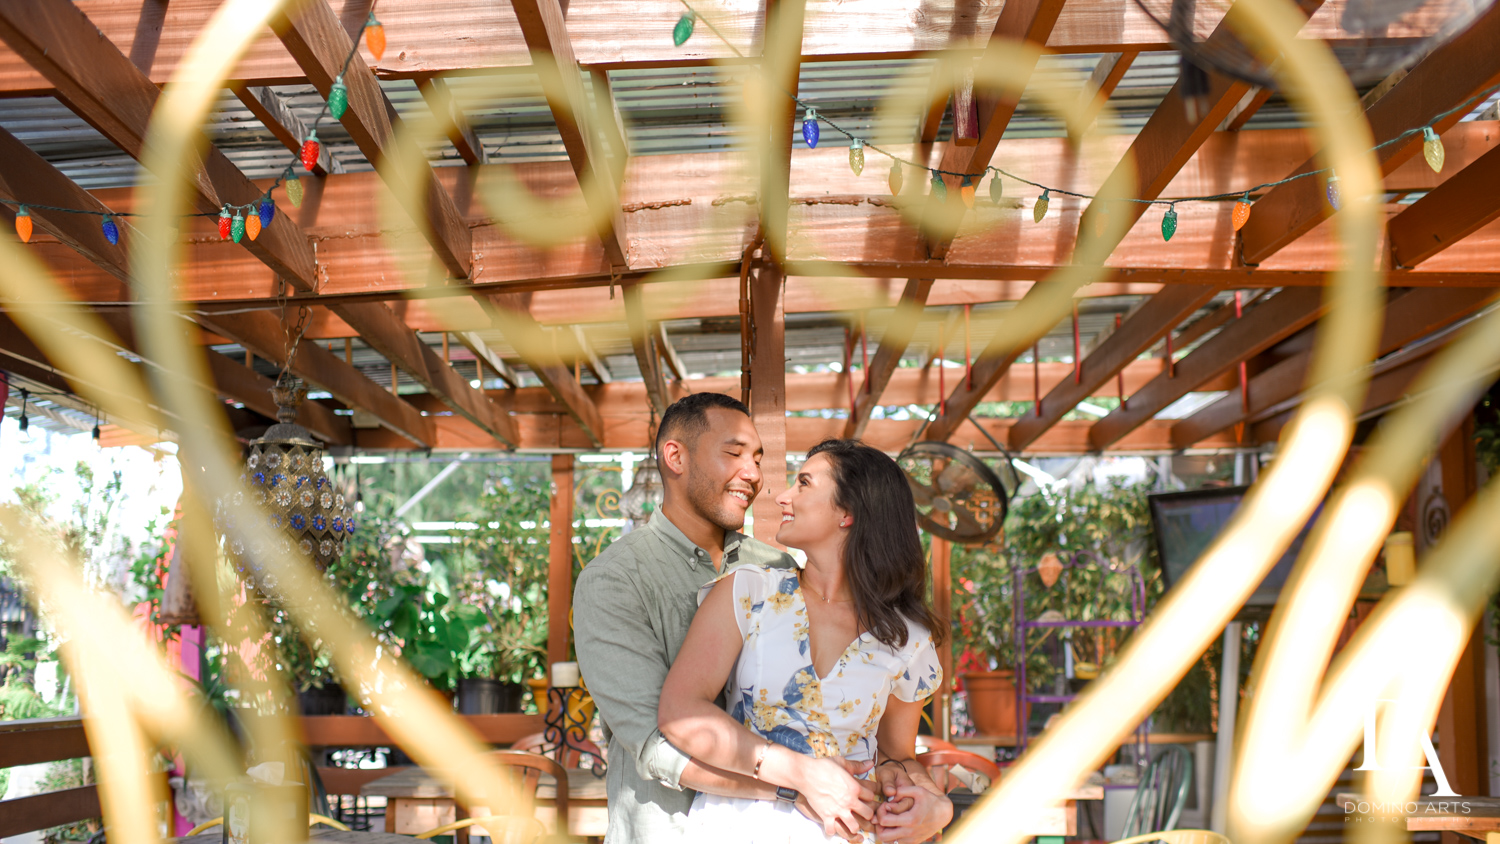 garden photos at Romantic Engagement Session at Graffiti Walls by Domino Arts Photography